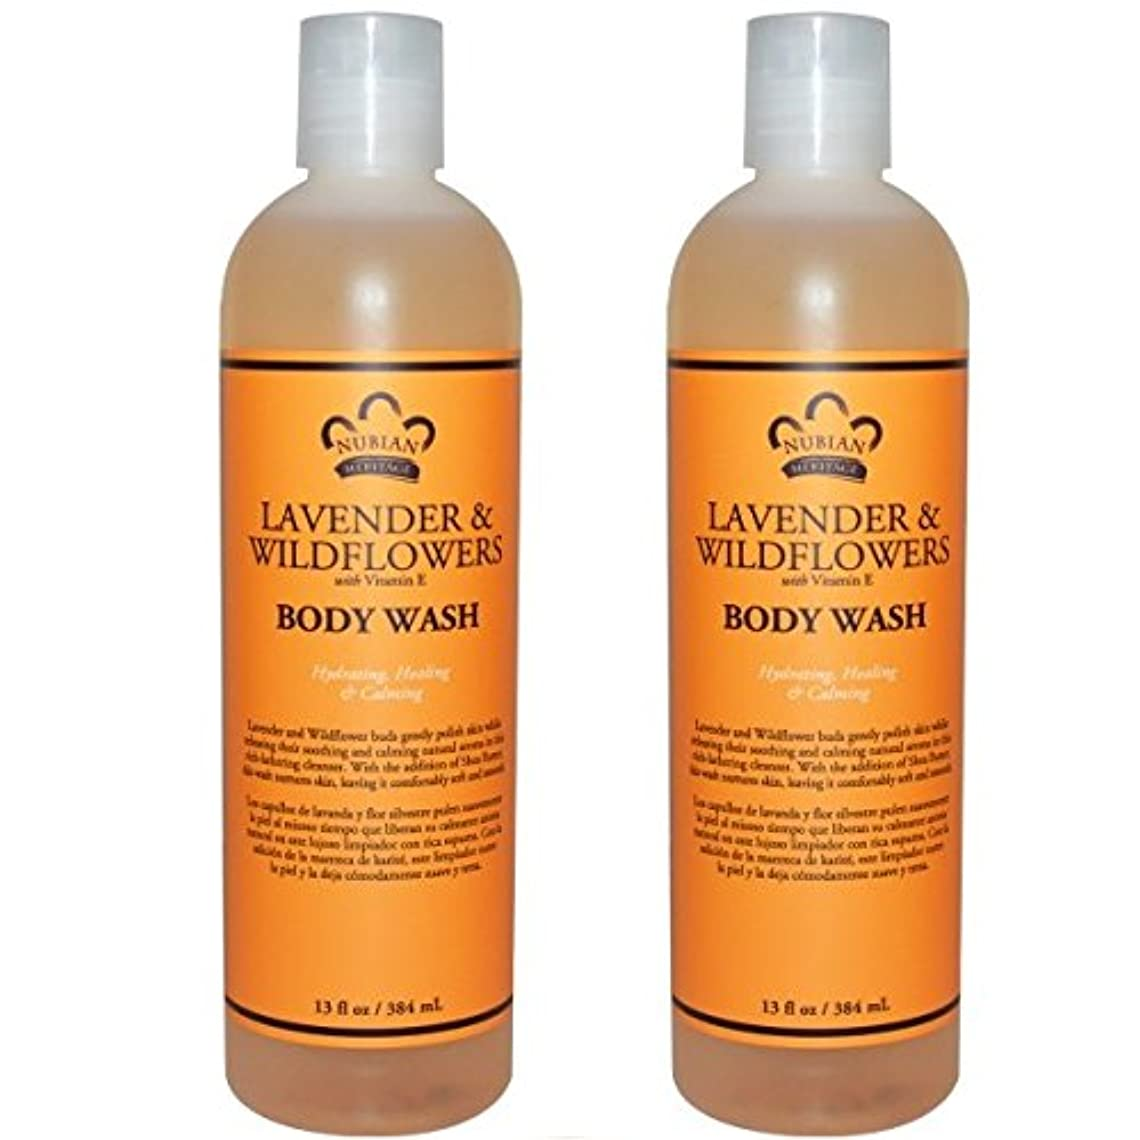 毛細血管乗ってそれる【海外直送品】【2本】Nubian Heritage Body Wash Relaxing & Nourishing, Lavender & Wildflowers - 13 fl oz (384 ml)